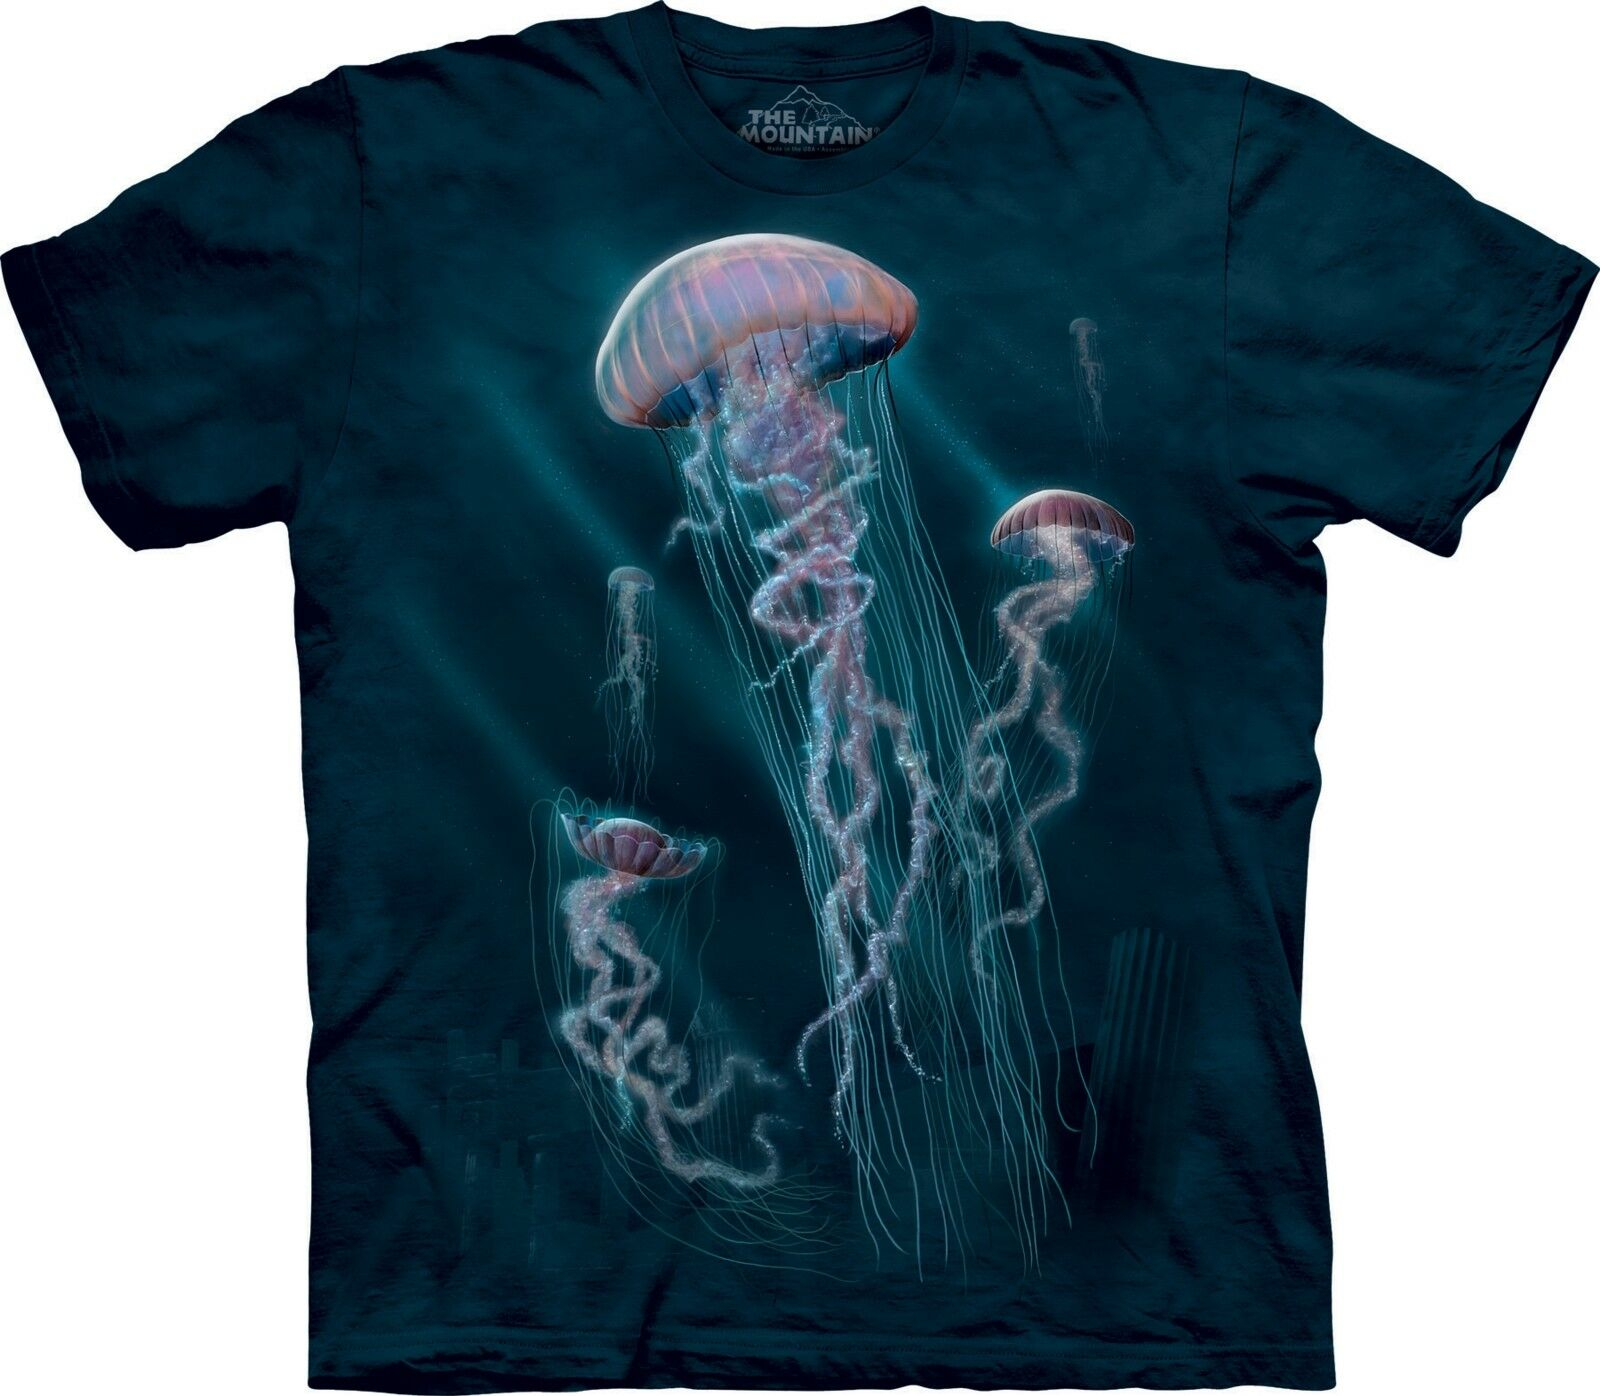 Jellyfish Aquatic Shirt Adult Unisex The Mountain